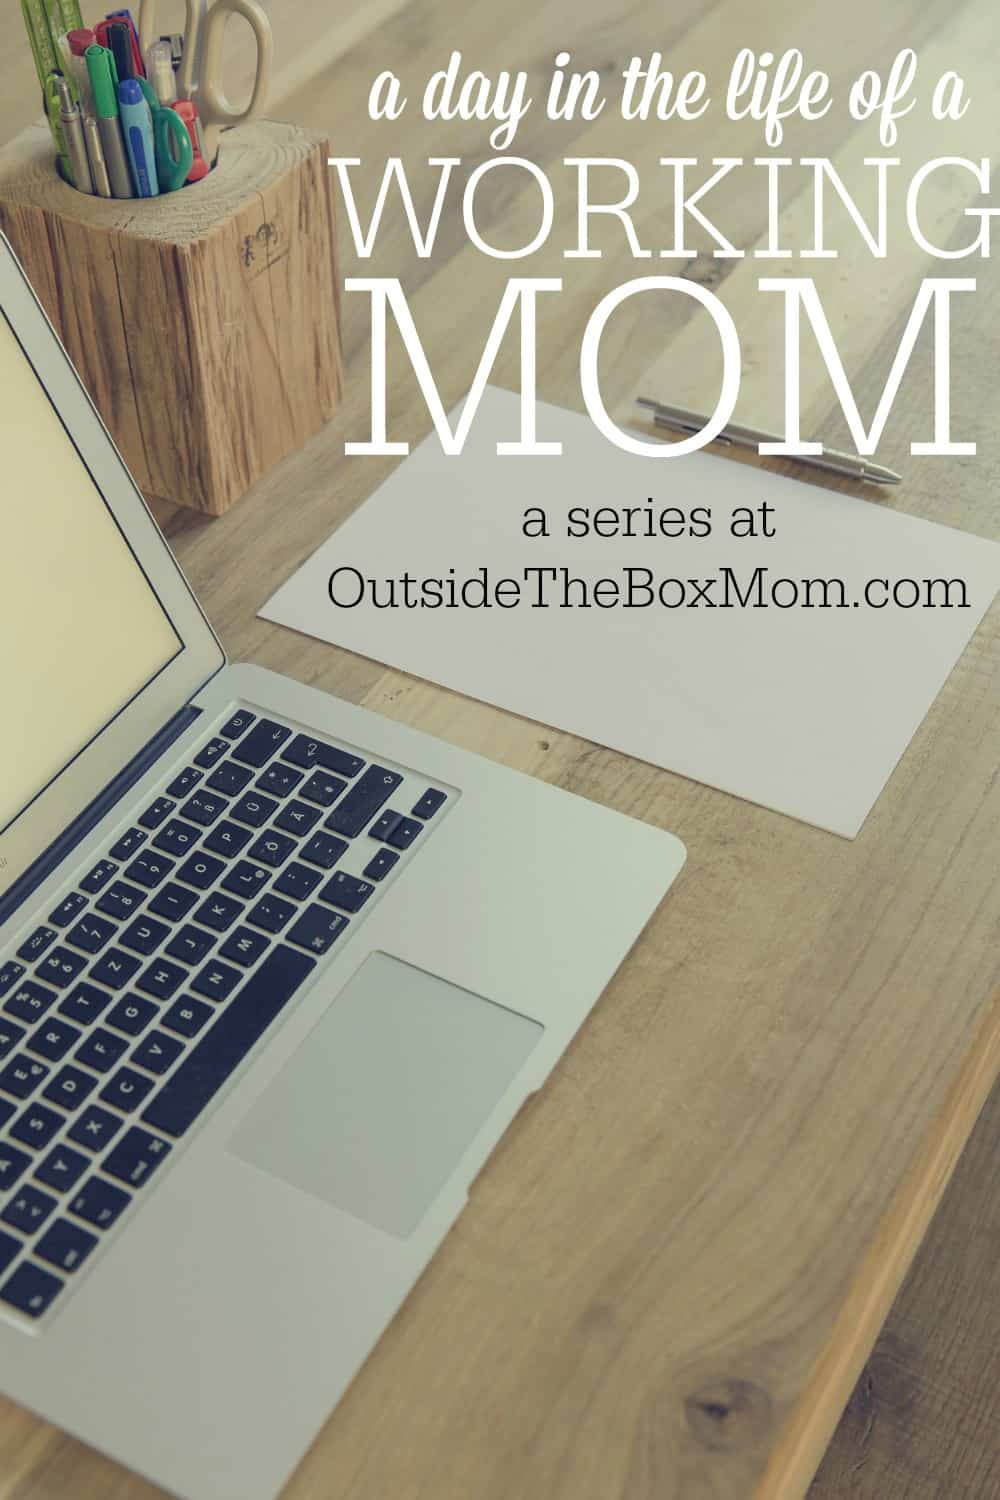 Have you ever wondered what a day in the life of another working mom is like? Every day this month, I will be featuring an interview with a working mom just like you.